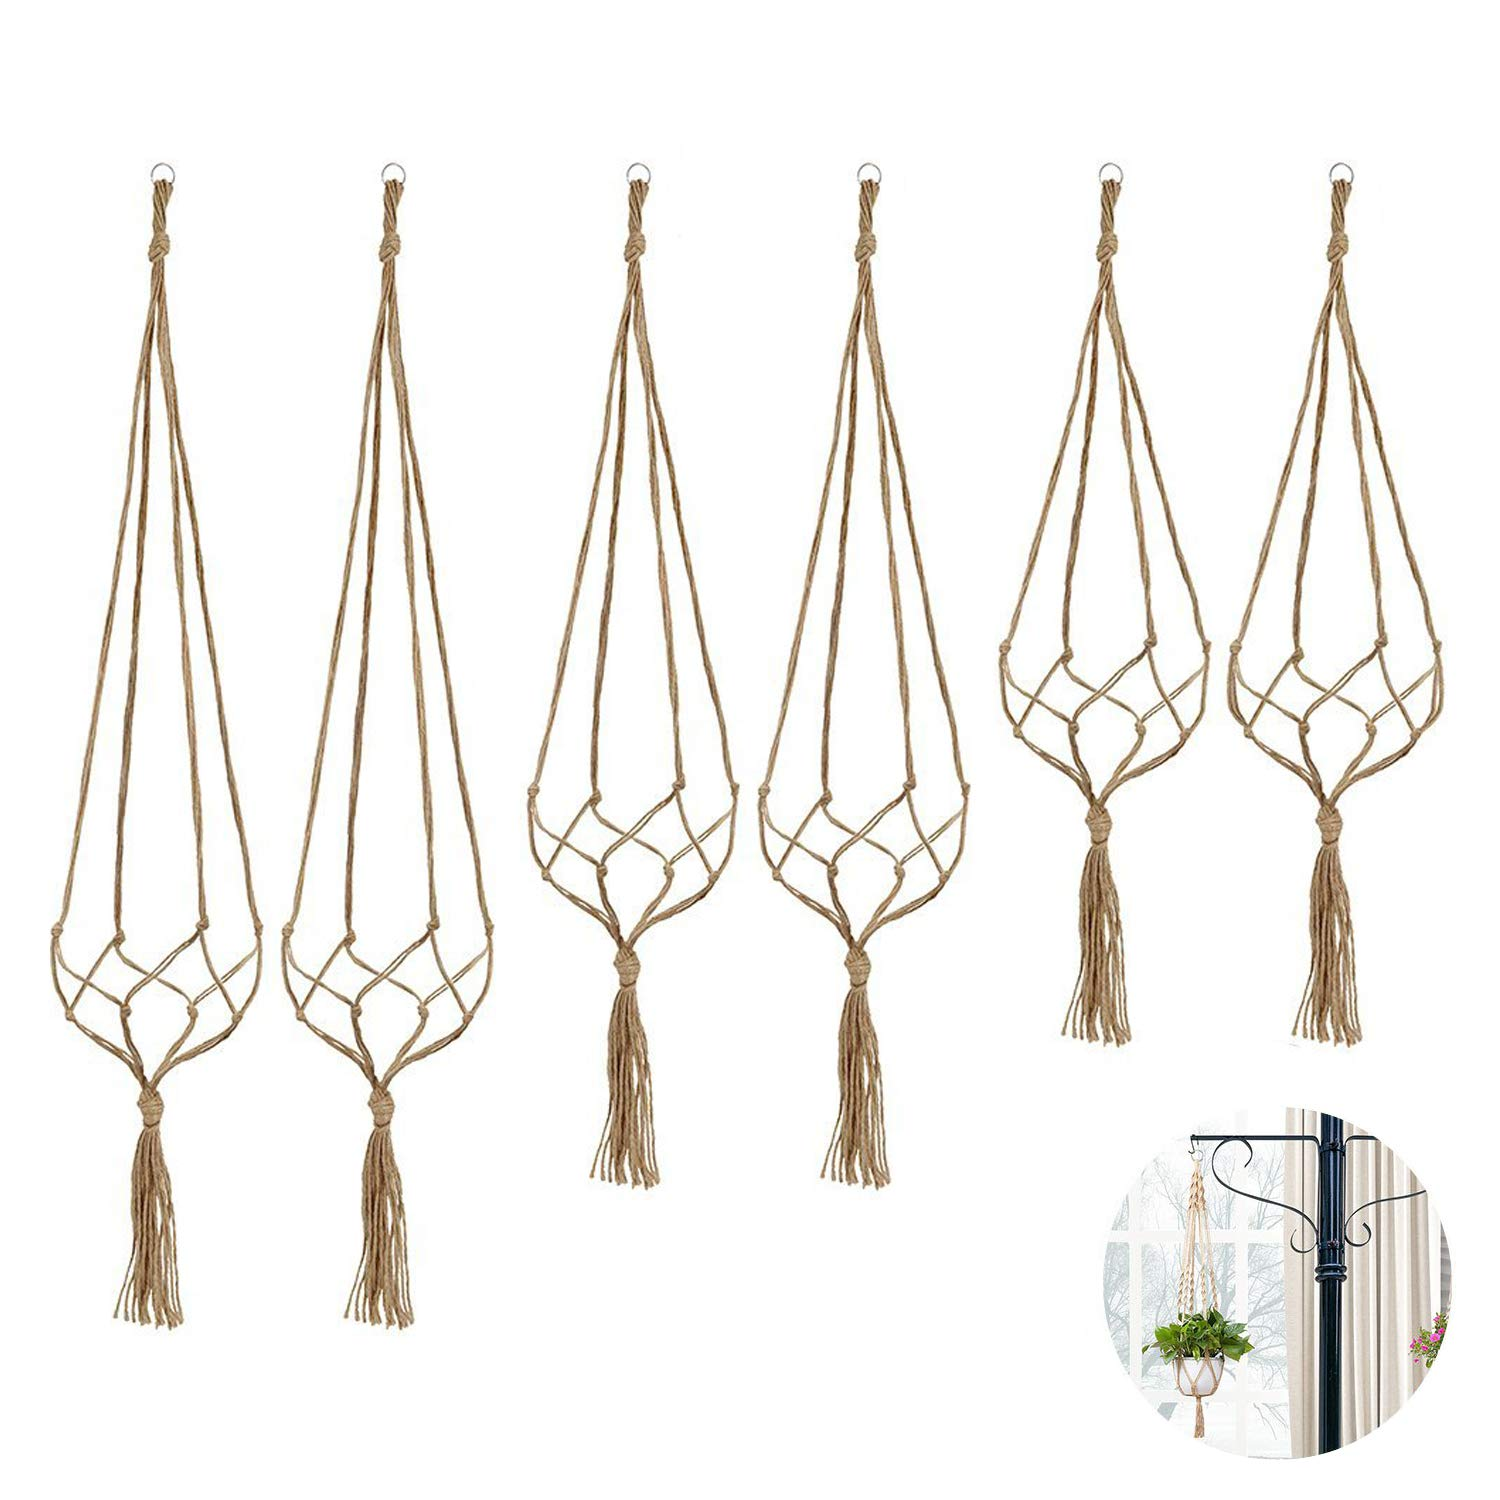 6 Pack Indoor Hanging Planter Holder, Plant Hanger, 3 Different Sizes (Each Size 2 Pack)